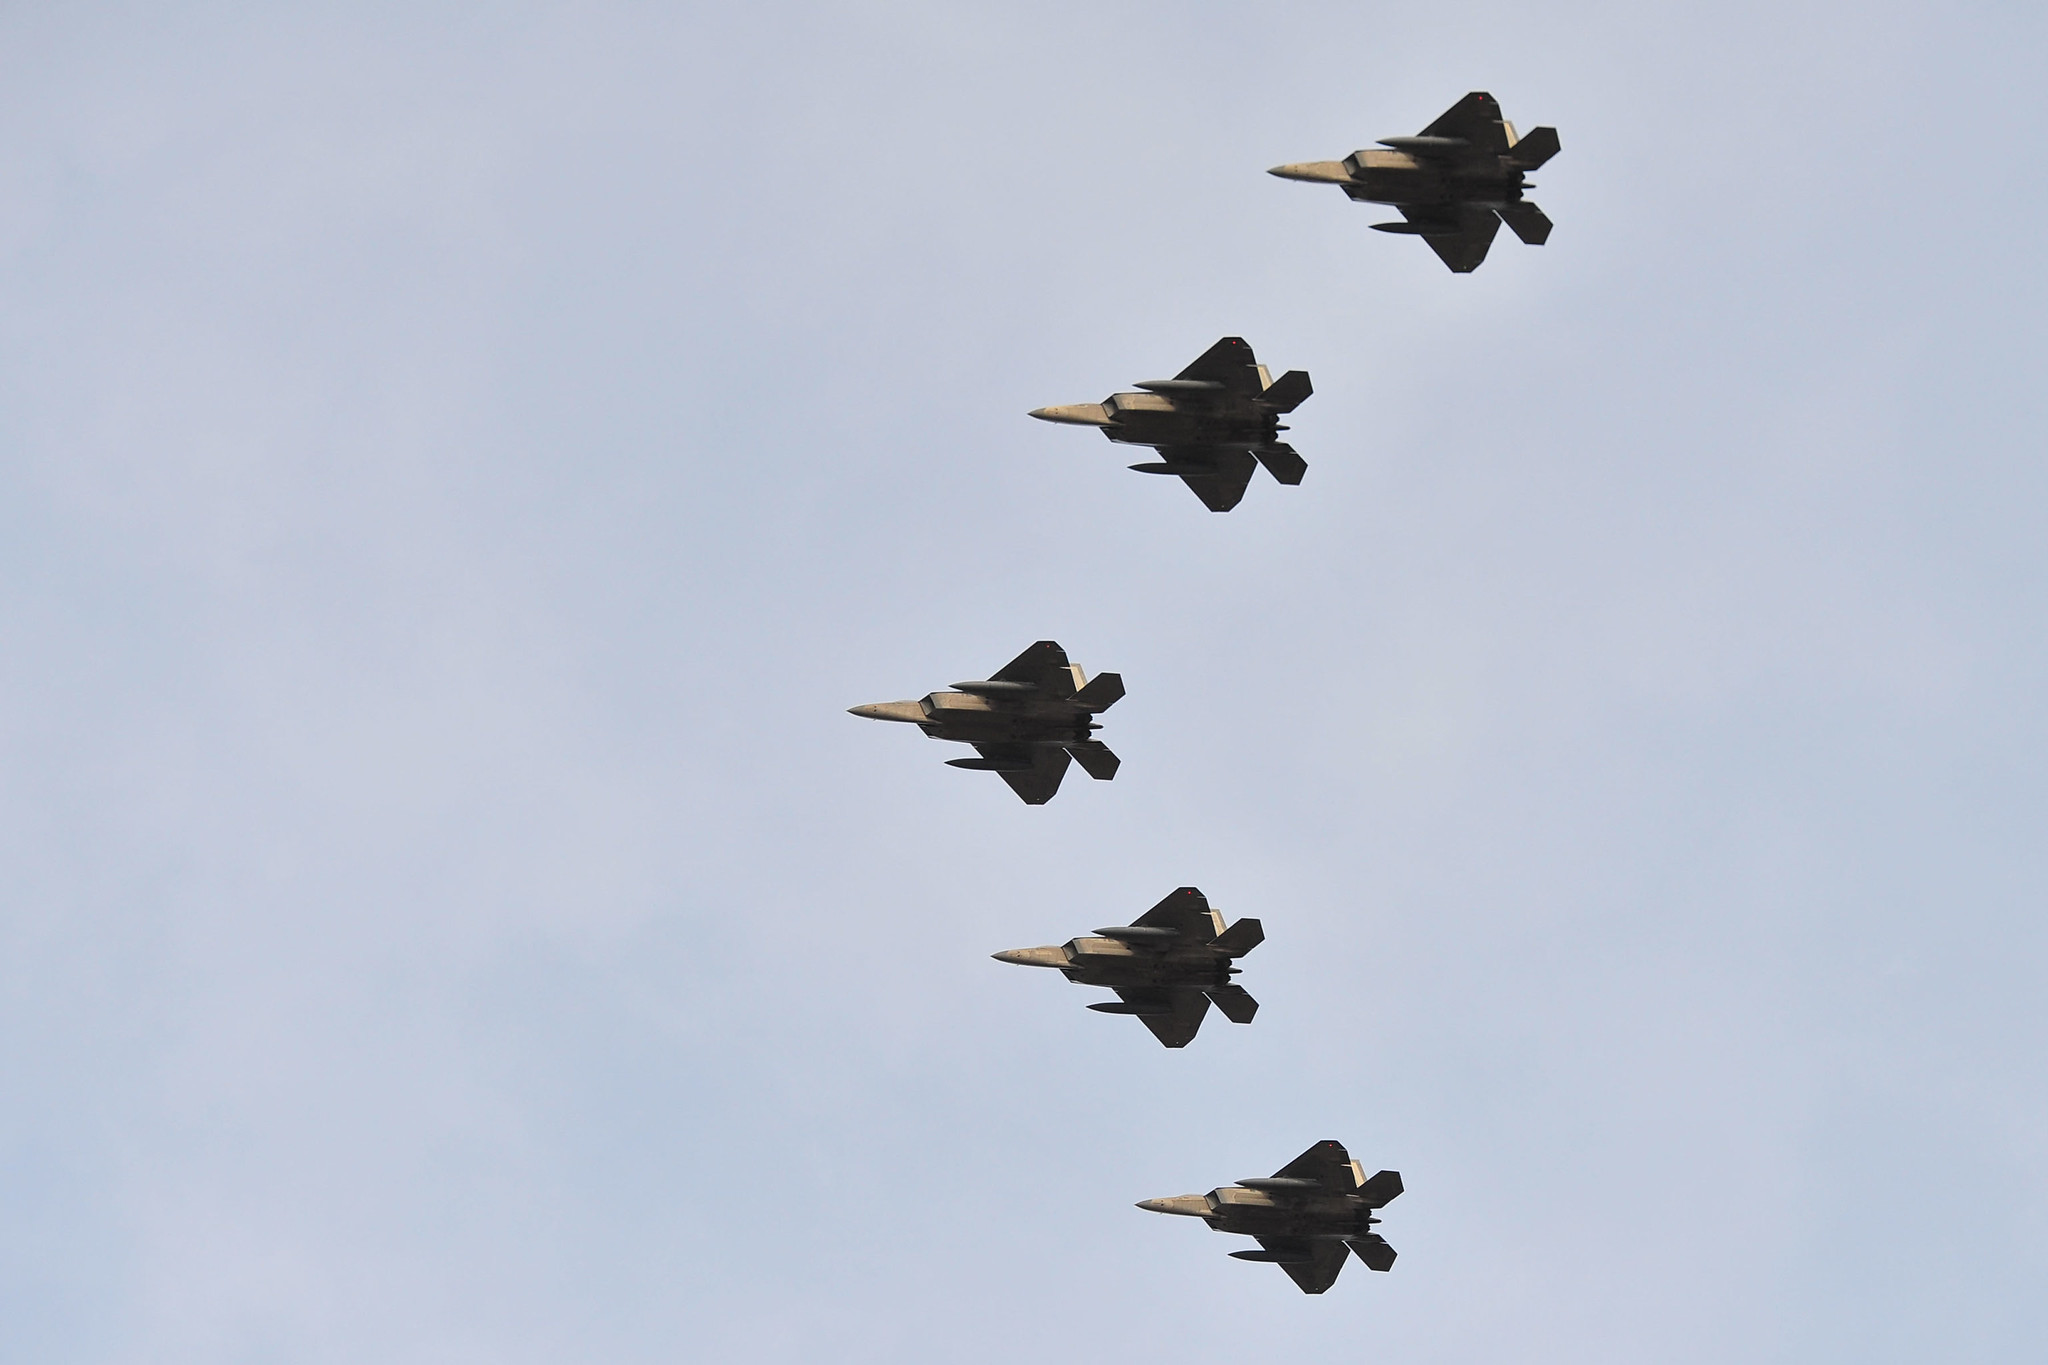 F-22 Raptor fly over